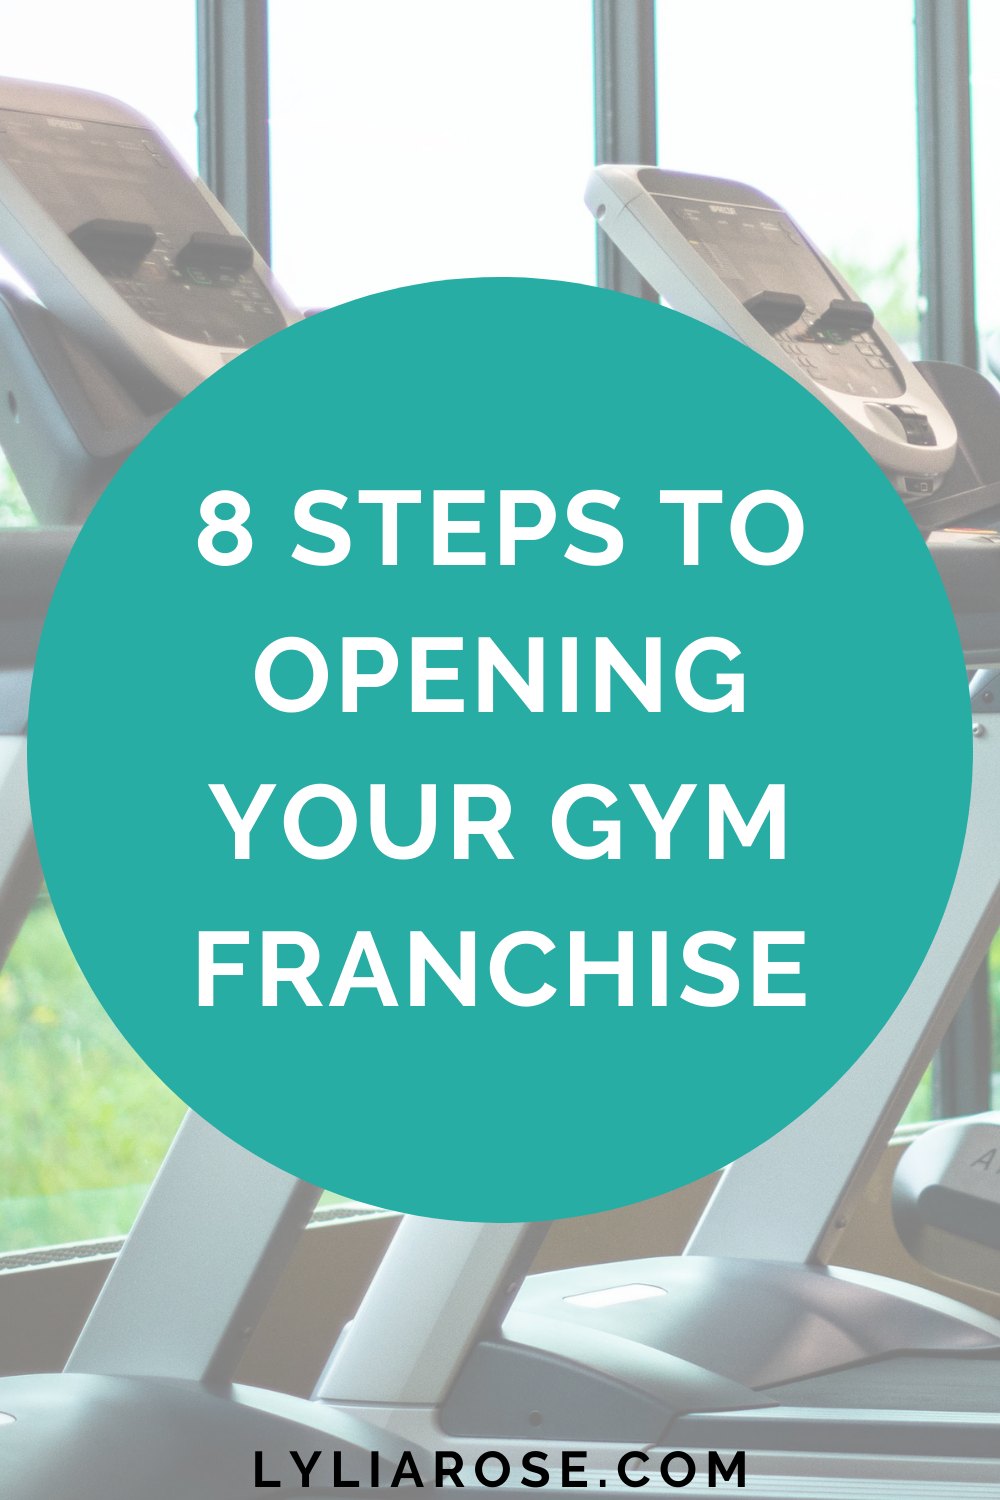 8 steps to opening your gym franchise